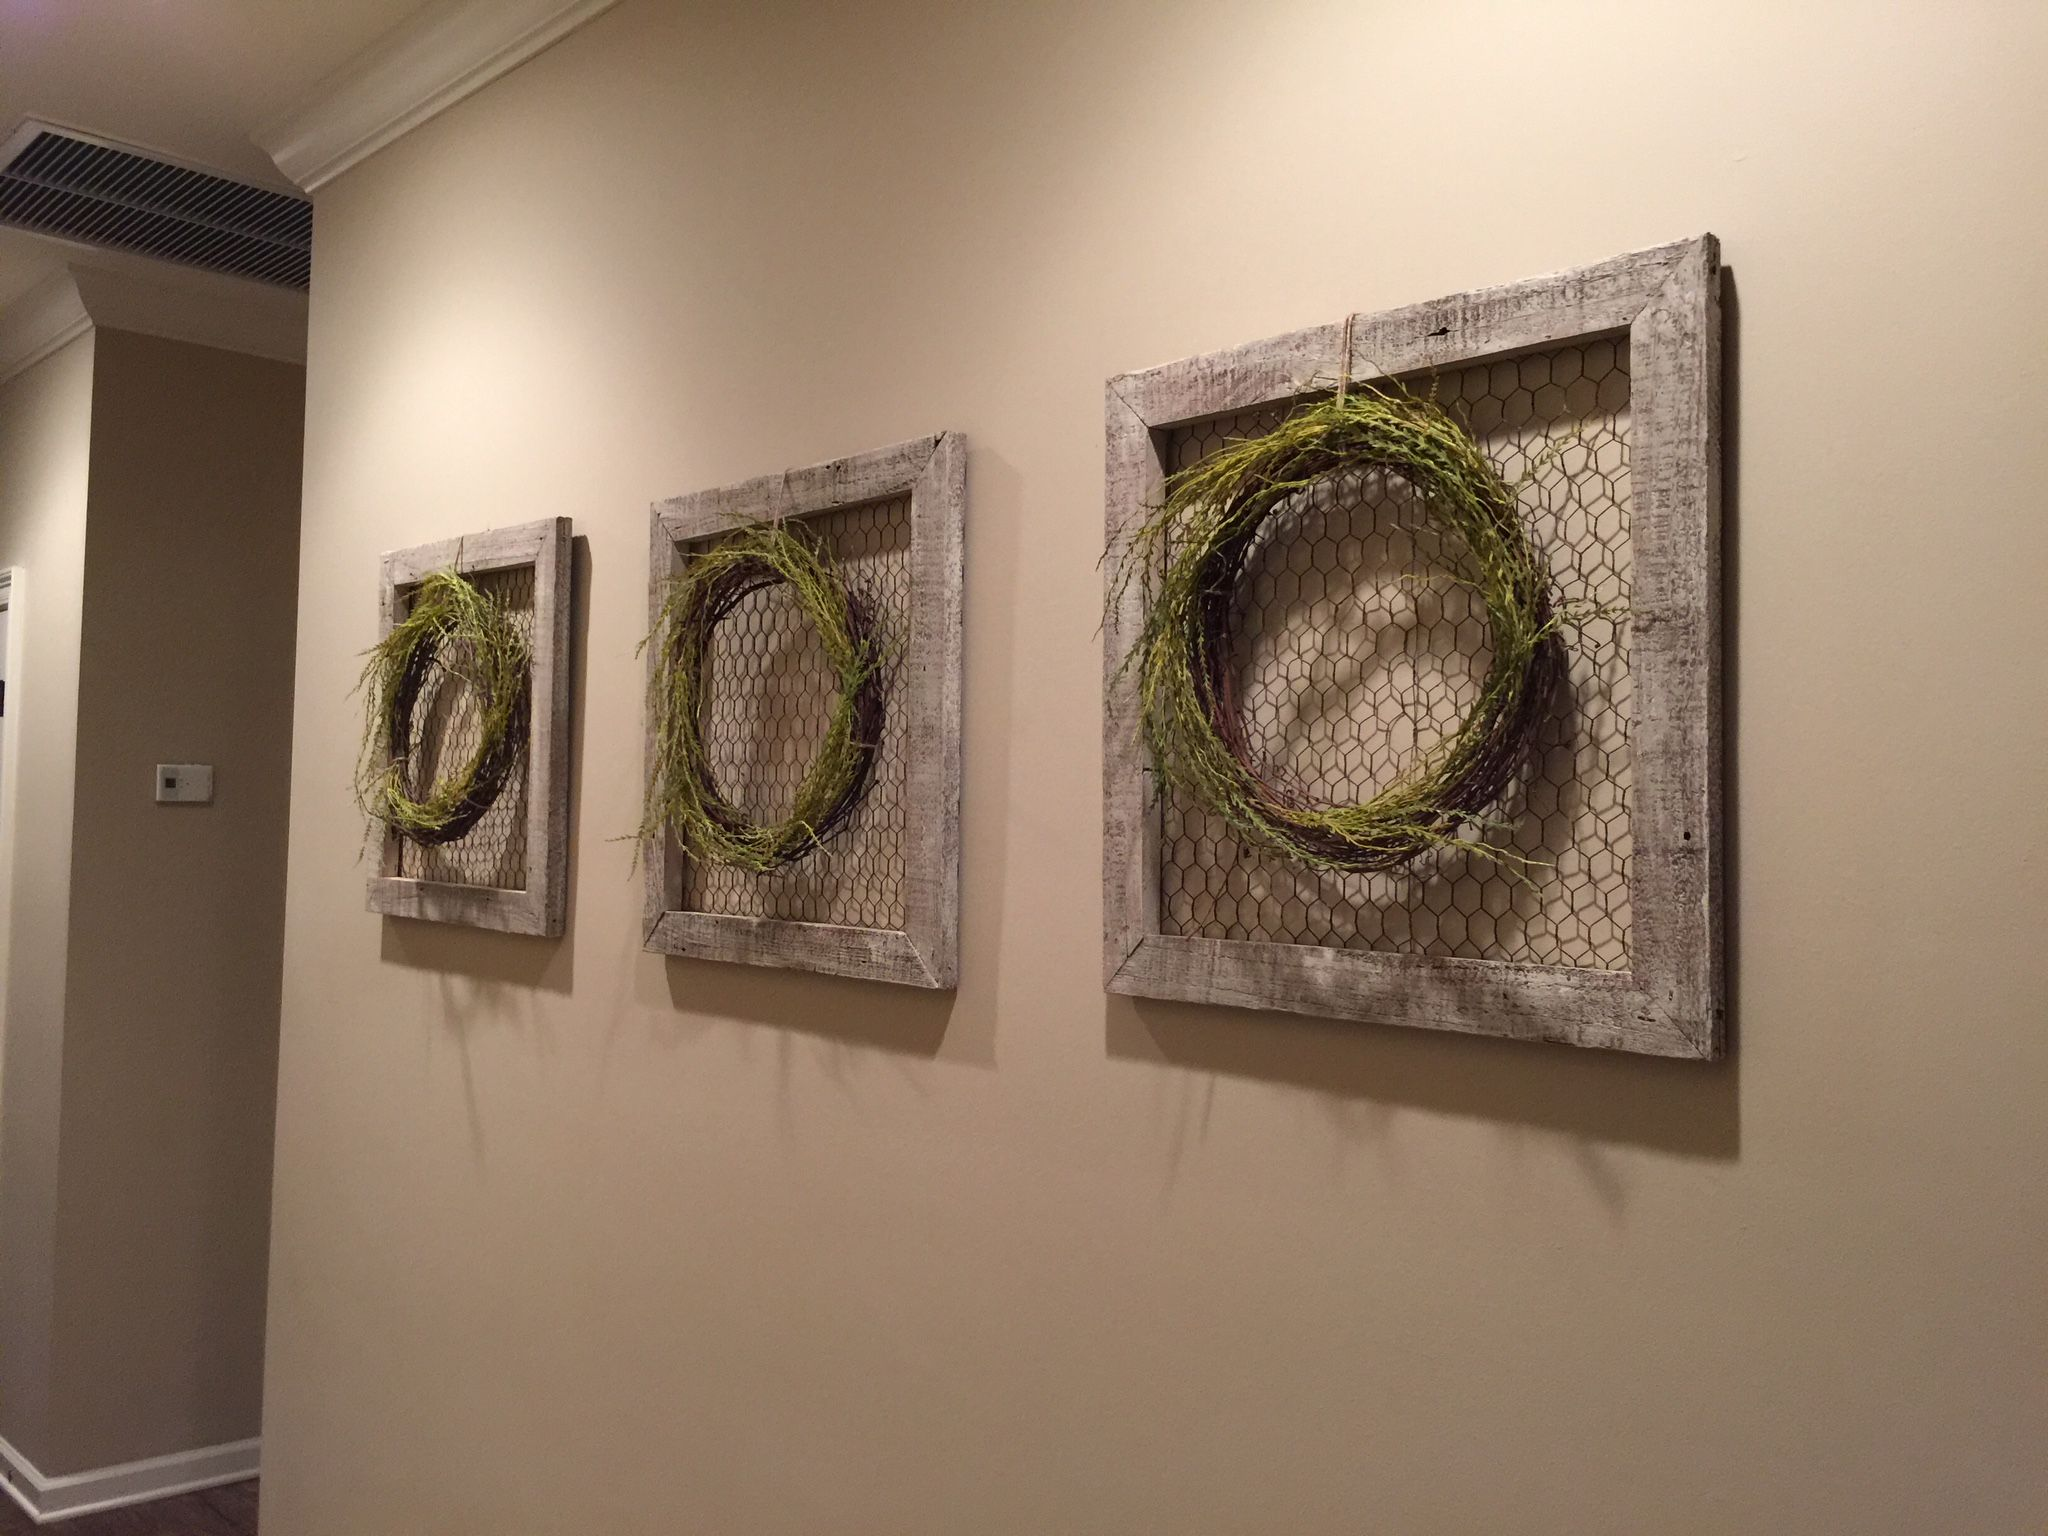 Wall Art Barn Wood Frames Chicken Wire Wreath And